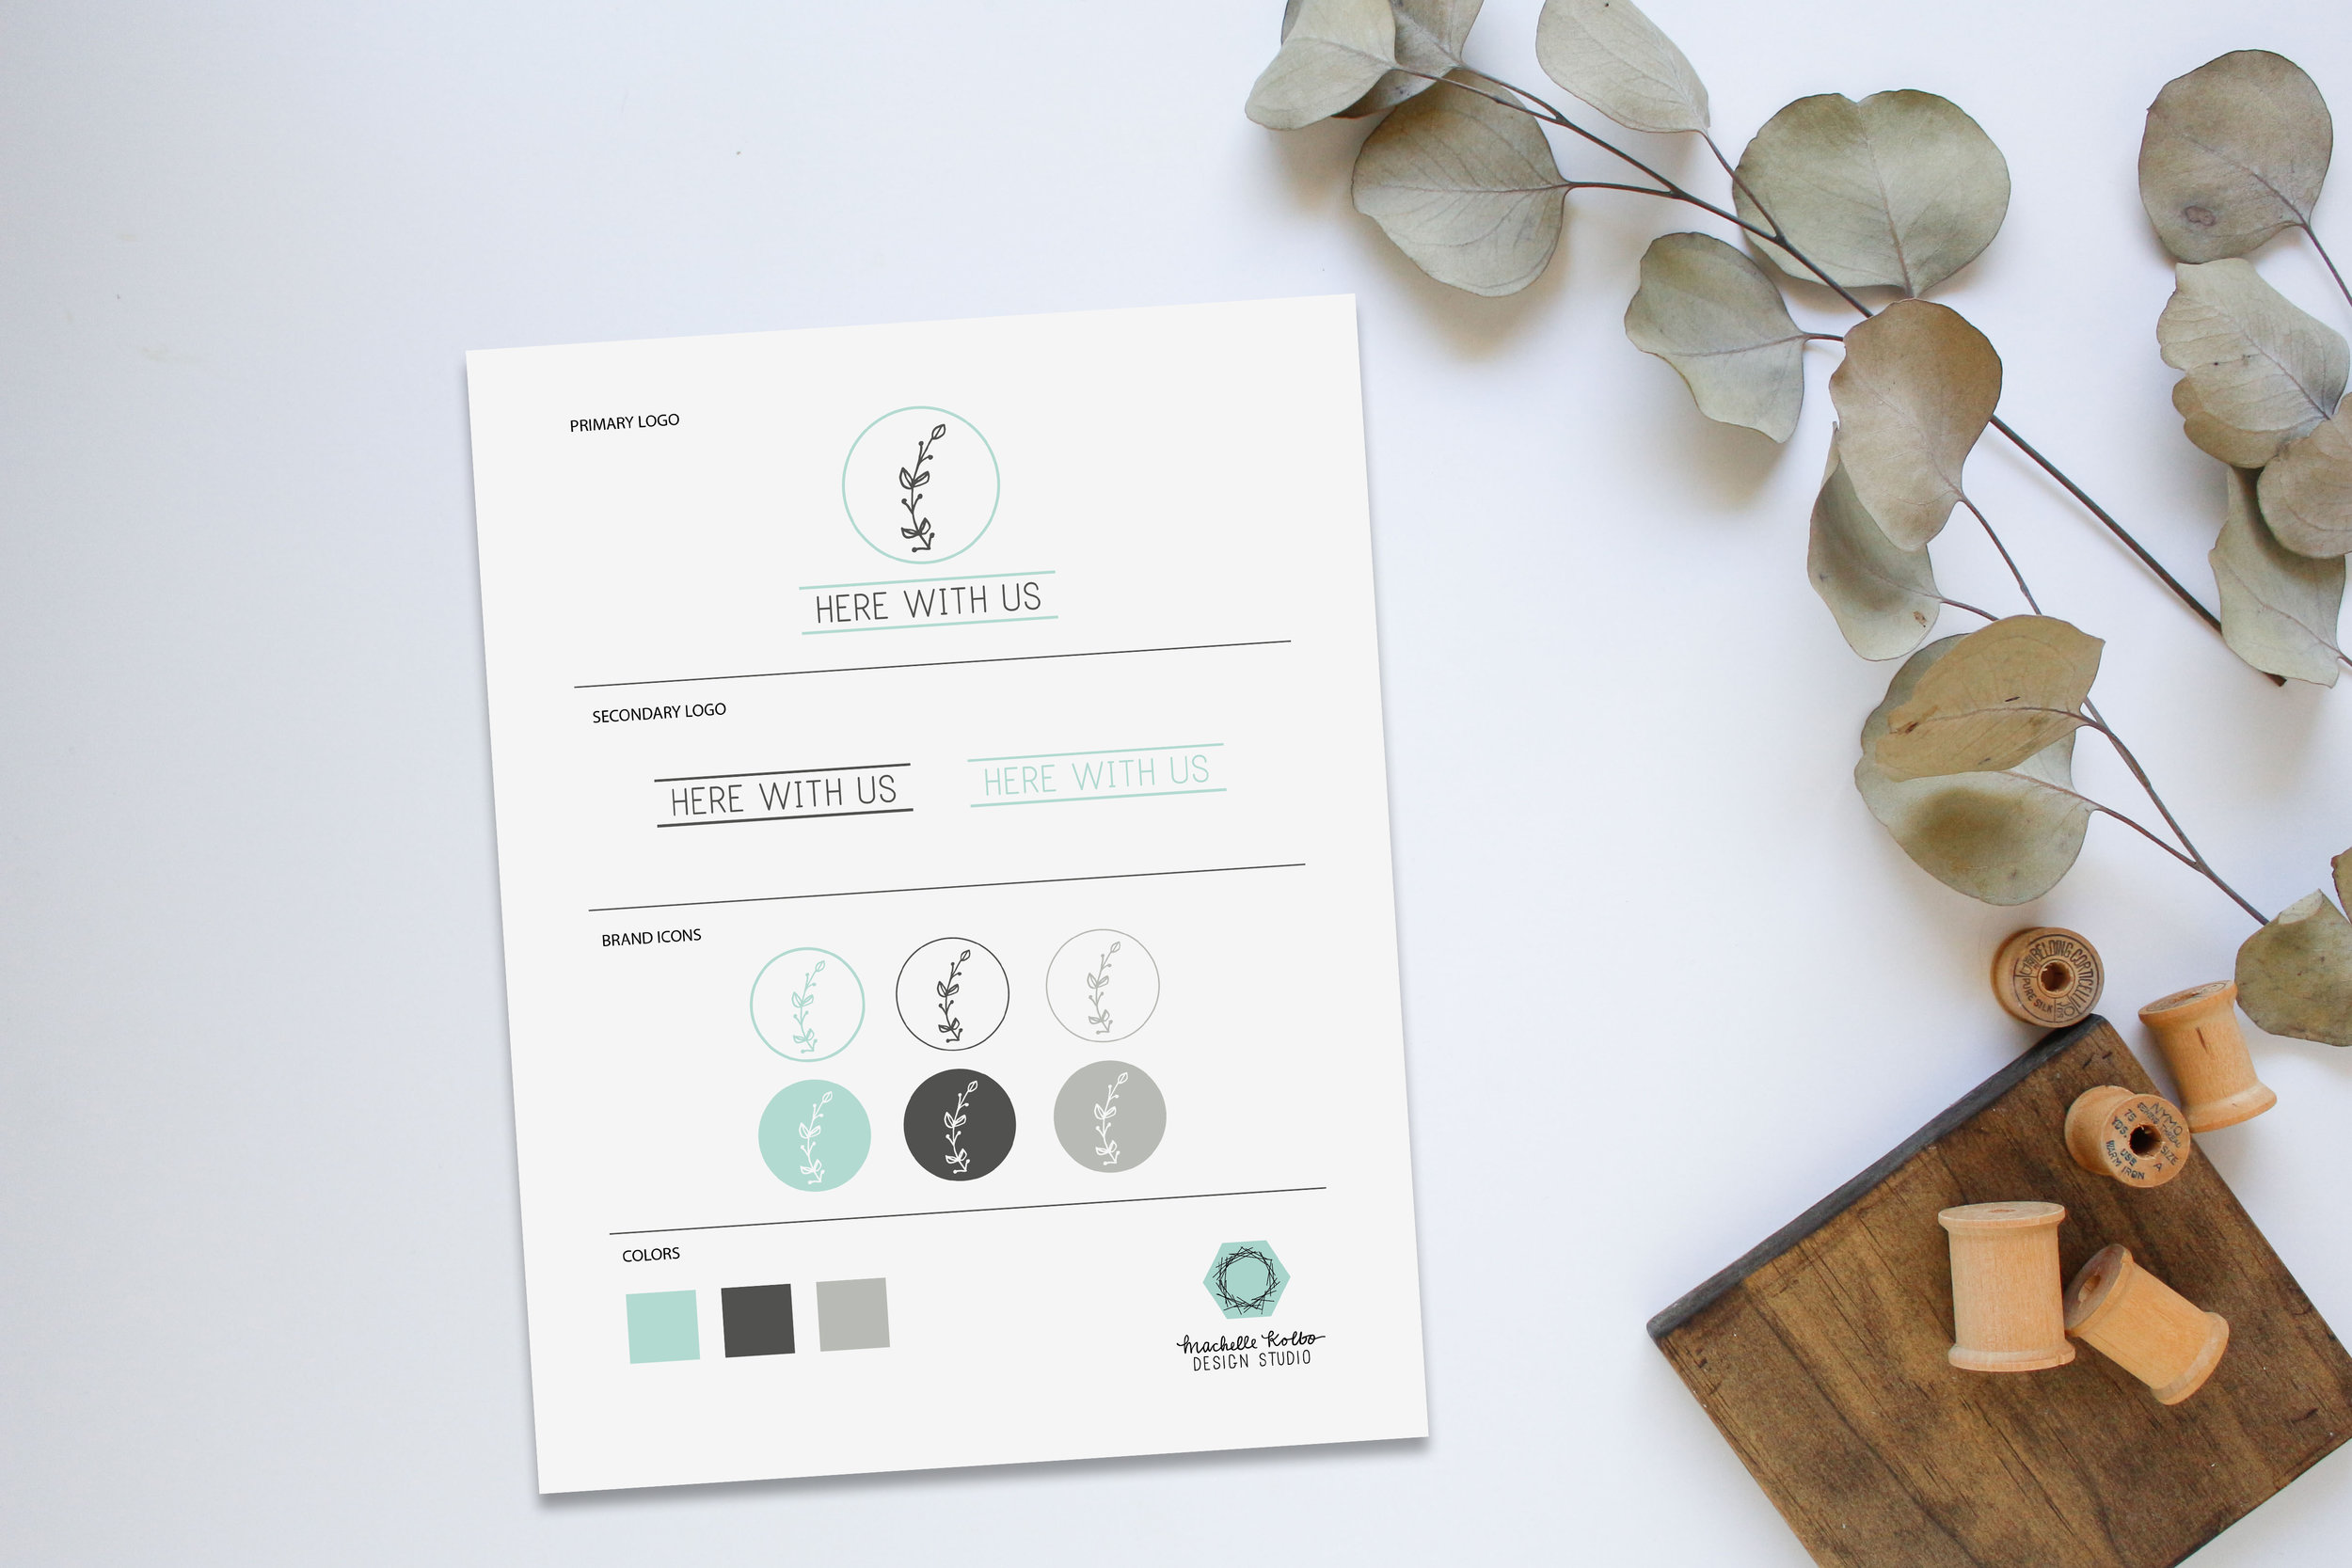 Here With Us Branding Sheet // Machelle Kolbo Design Studio